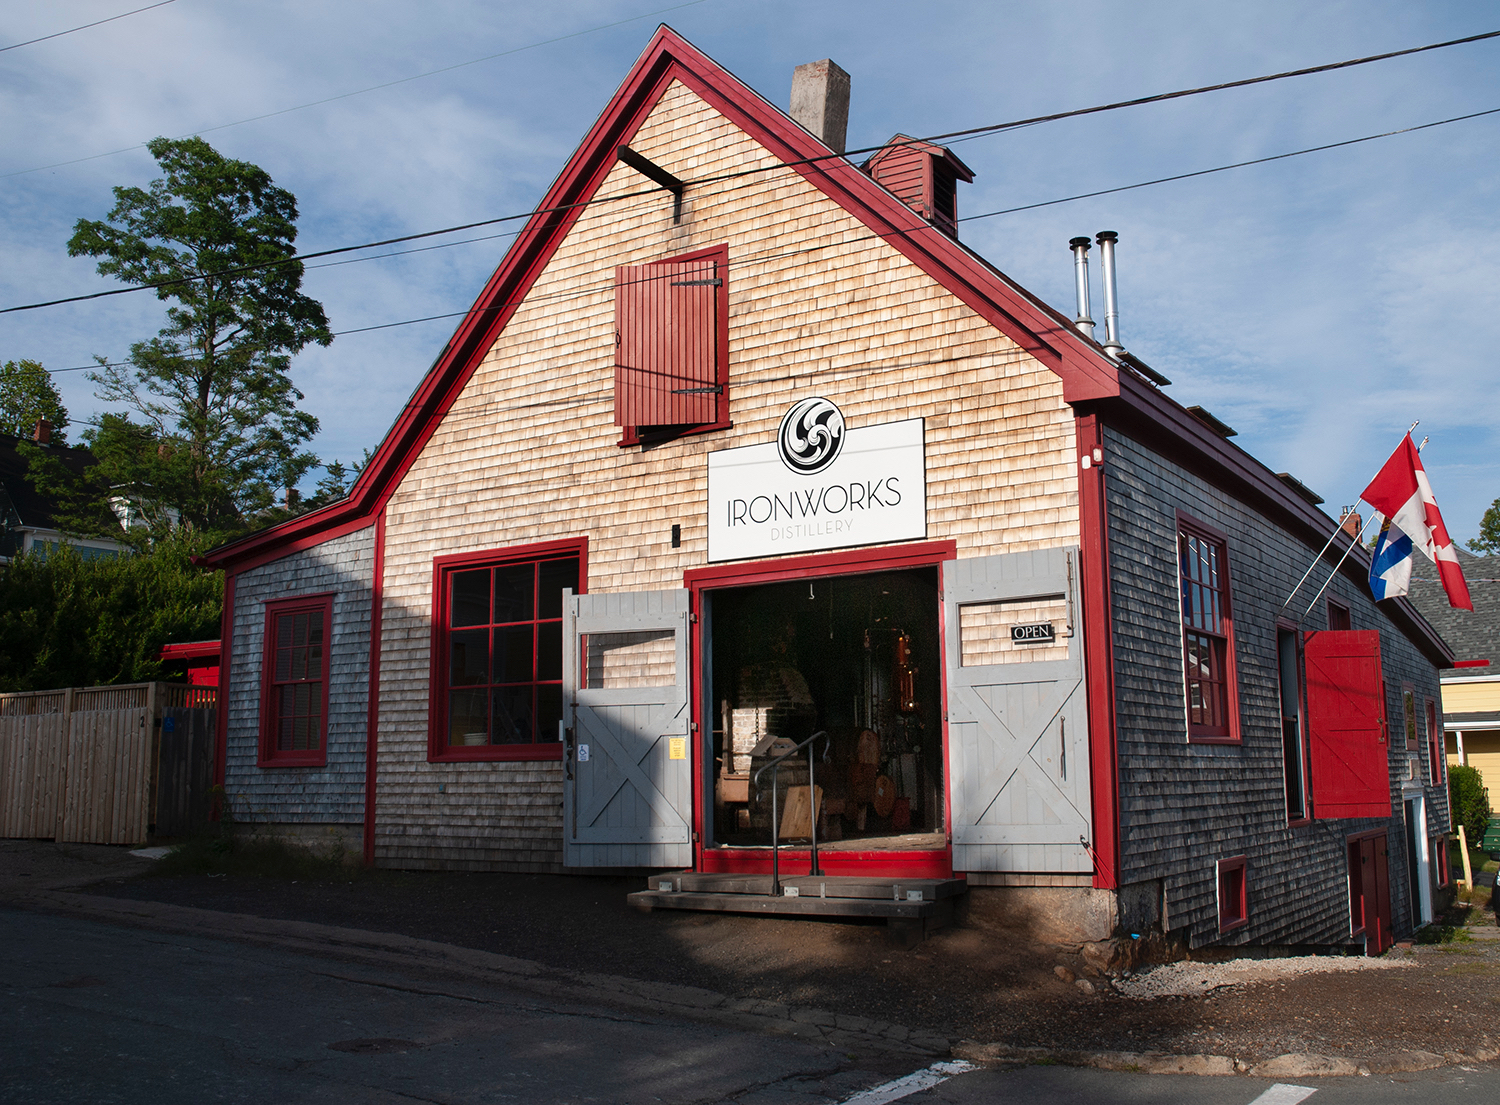 The Ironworks Distillery exterior in Lunenburg Nova Scotia is one of the most popular things to do in Nova Scotia.